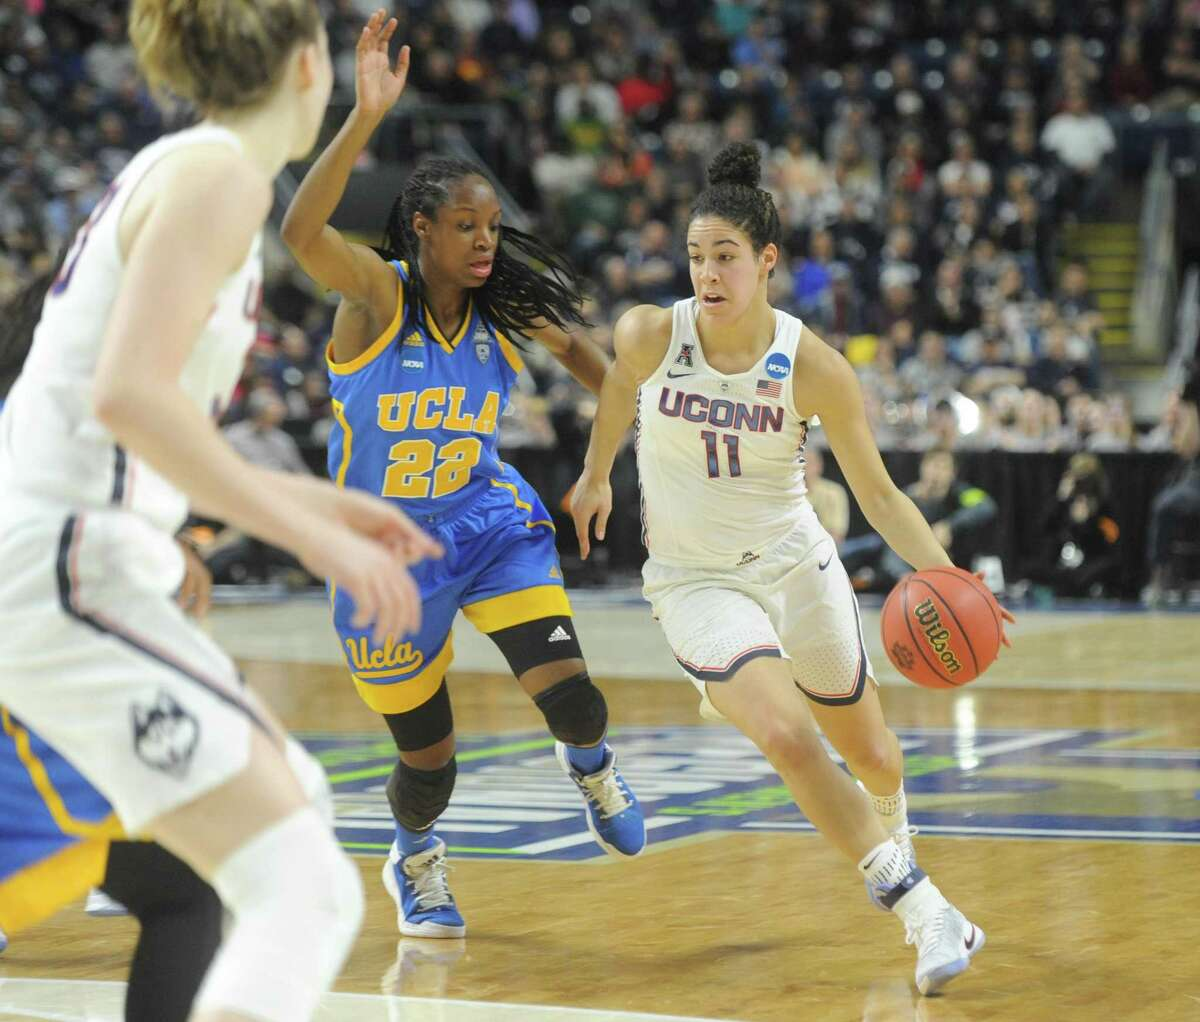 UConn's Kia Nurse (11) drives past UCLA's Kennedy Burke (22) in No. 1 UConn's 86-71 win over No. 4 UCLA in the 2017 NCAA Division I Women's Basketball Championship Regional Semifinal game at Webster Bank Arena in Bridgeport, Conn. Saturday, March 25, 2017.